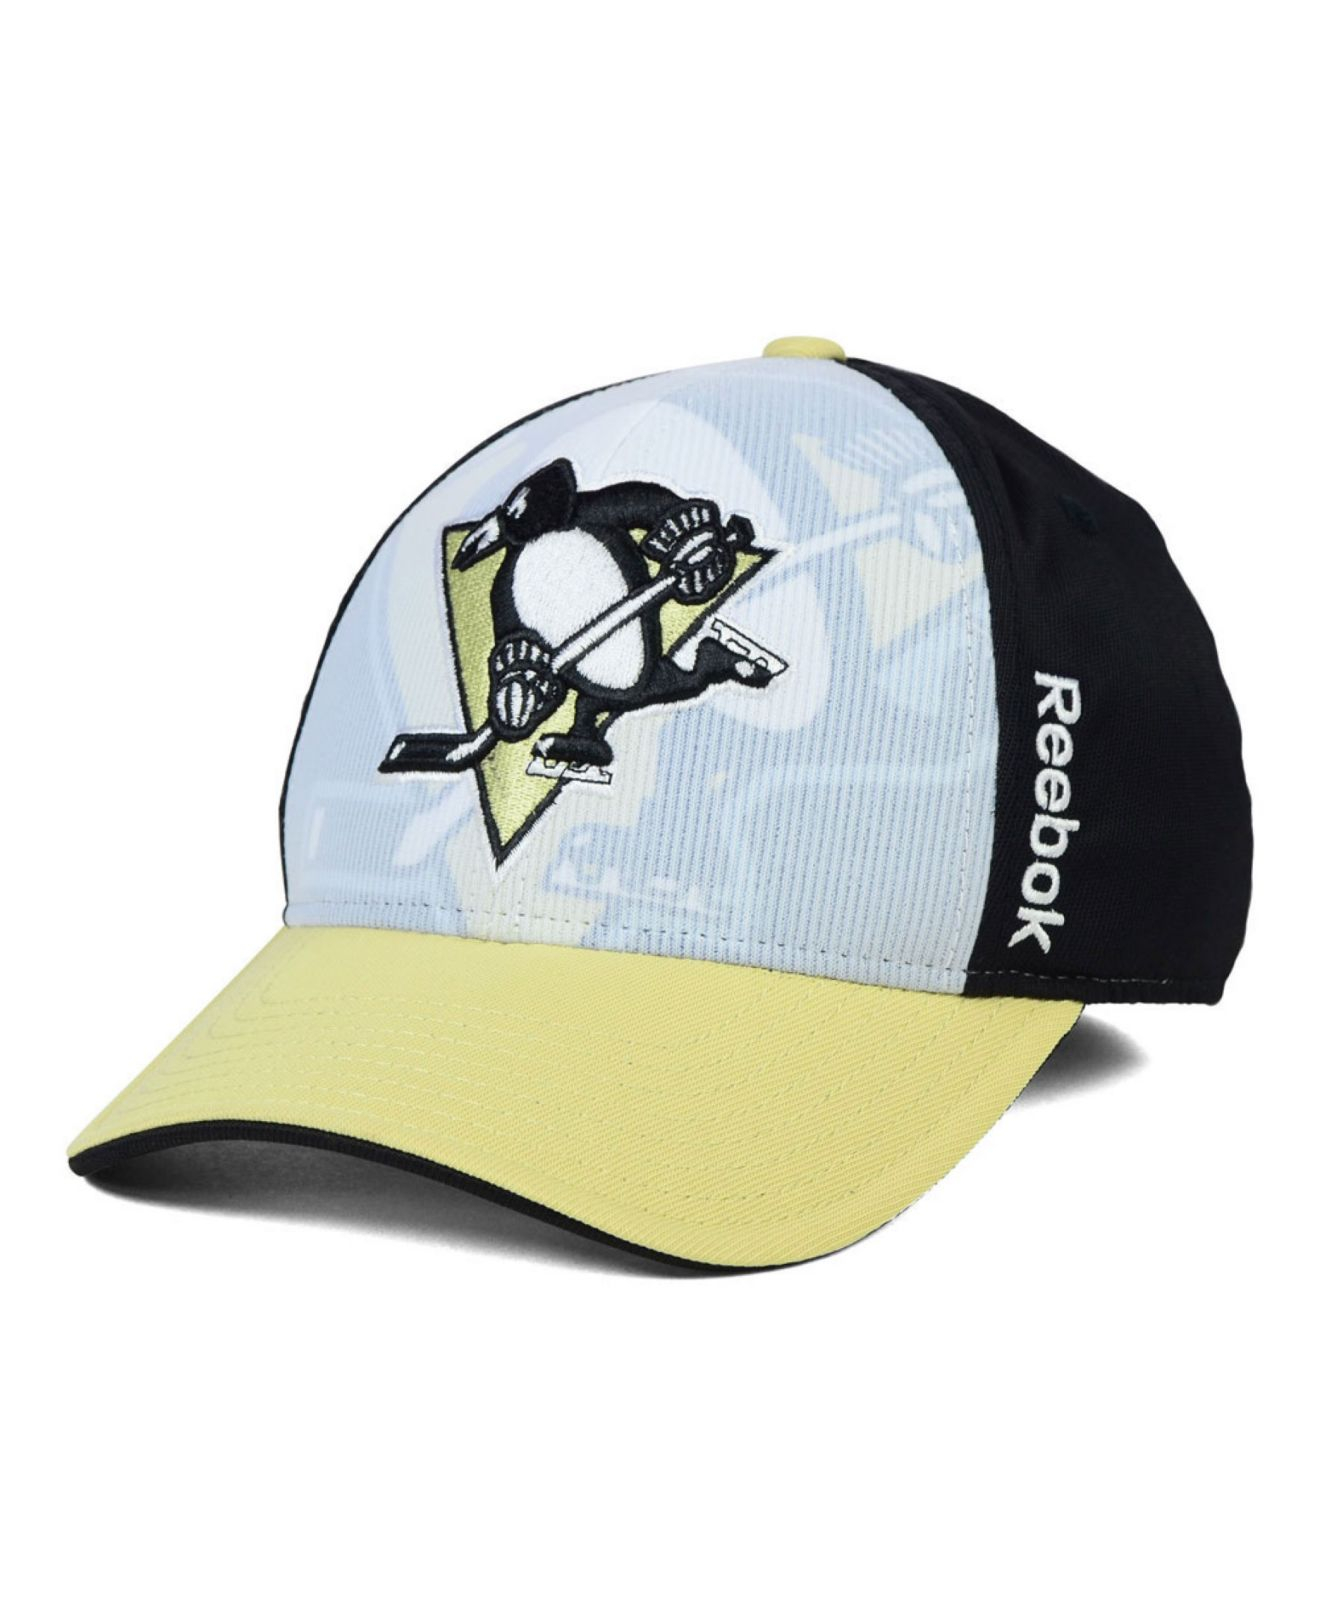 fda406e2b74 Lyst - Reebok Pittsburgh Penguins Stretch-Fit Cap in Yellow for Men